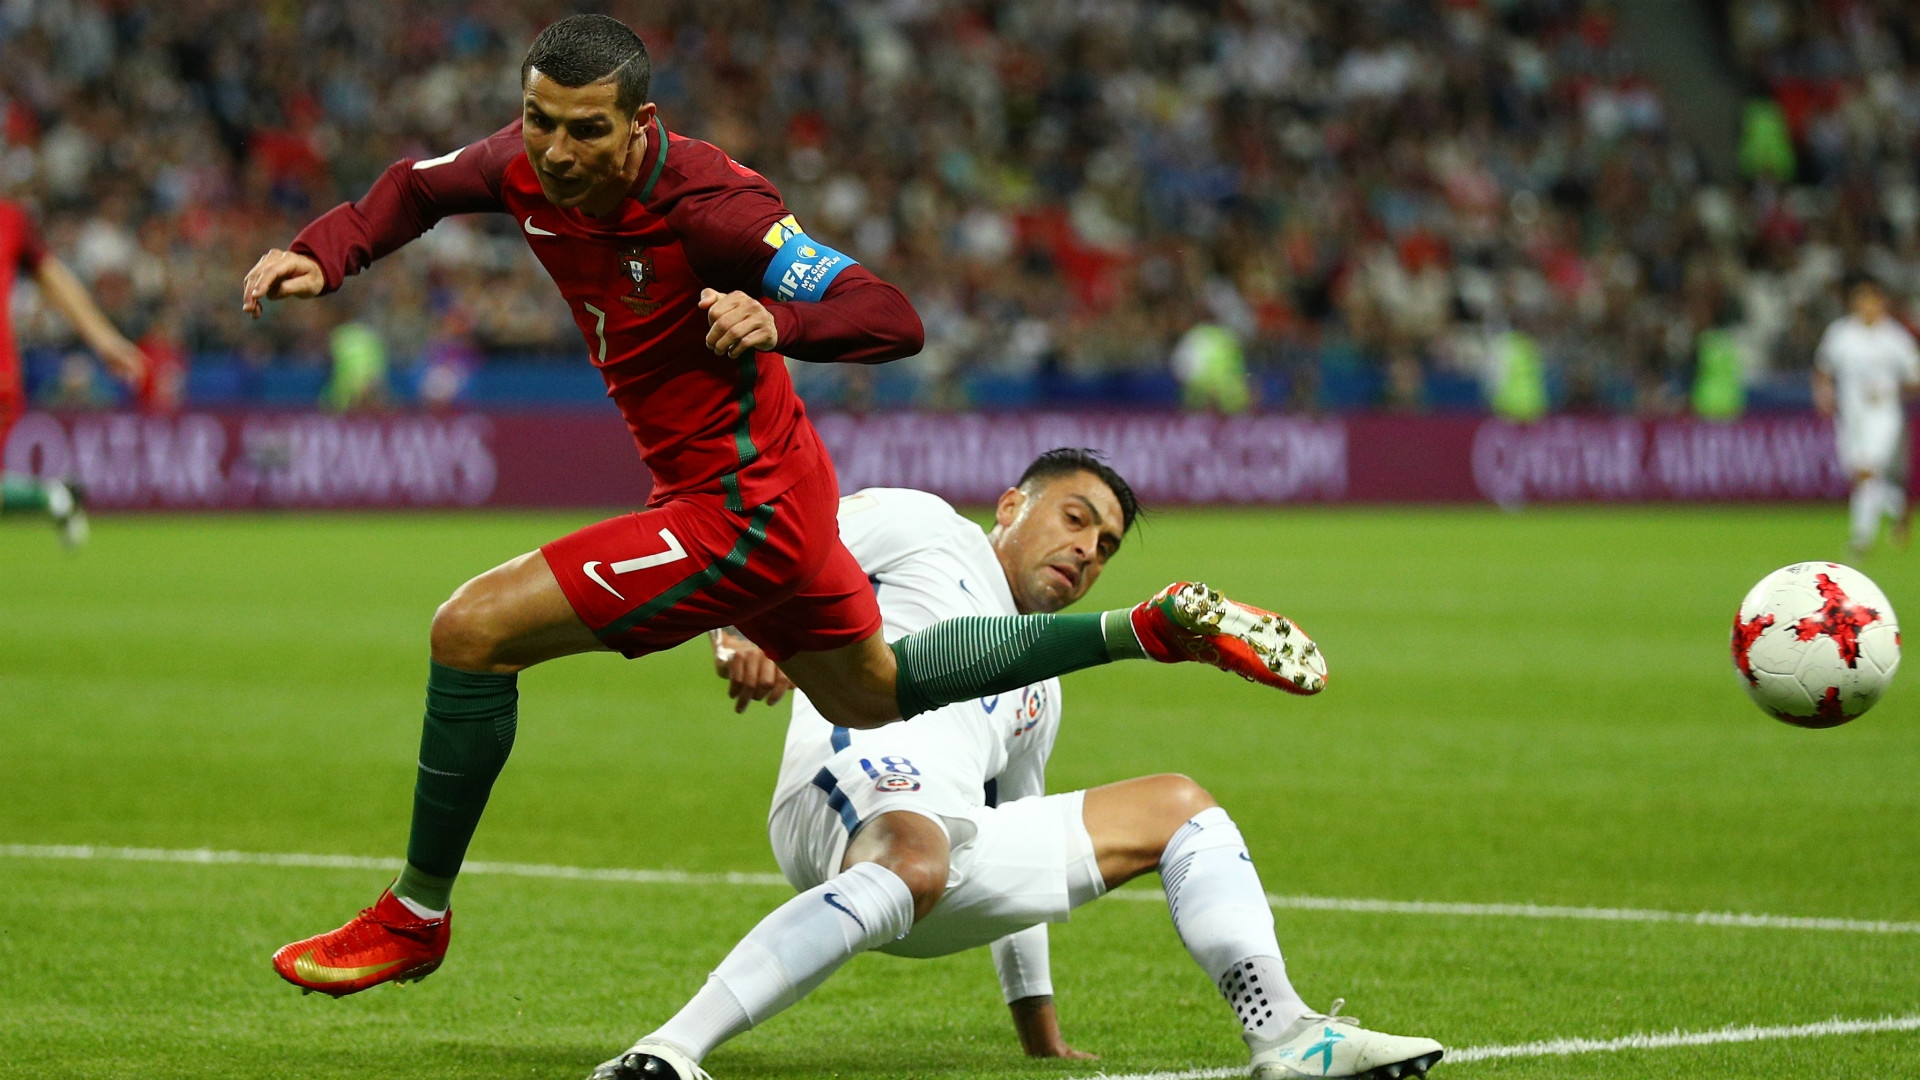 Ronaldo's Portugal is out of the tournament, with the ambitious winger having done his best to win one of the few trophies missing from his outstanding resume.